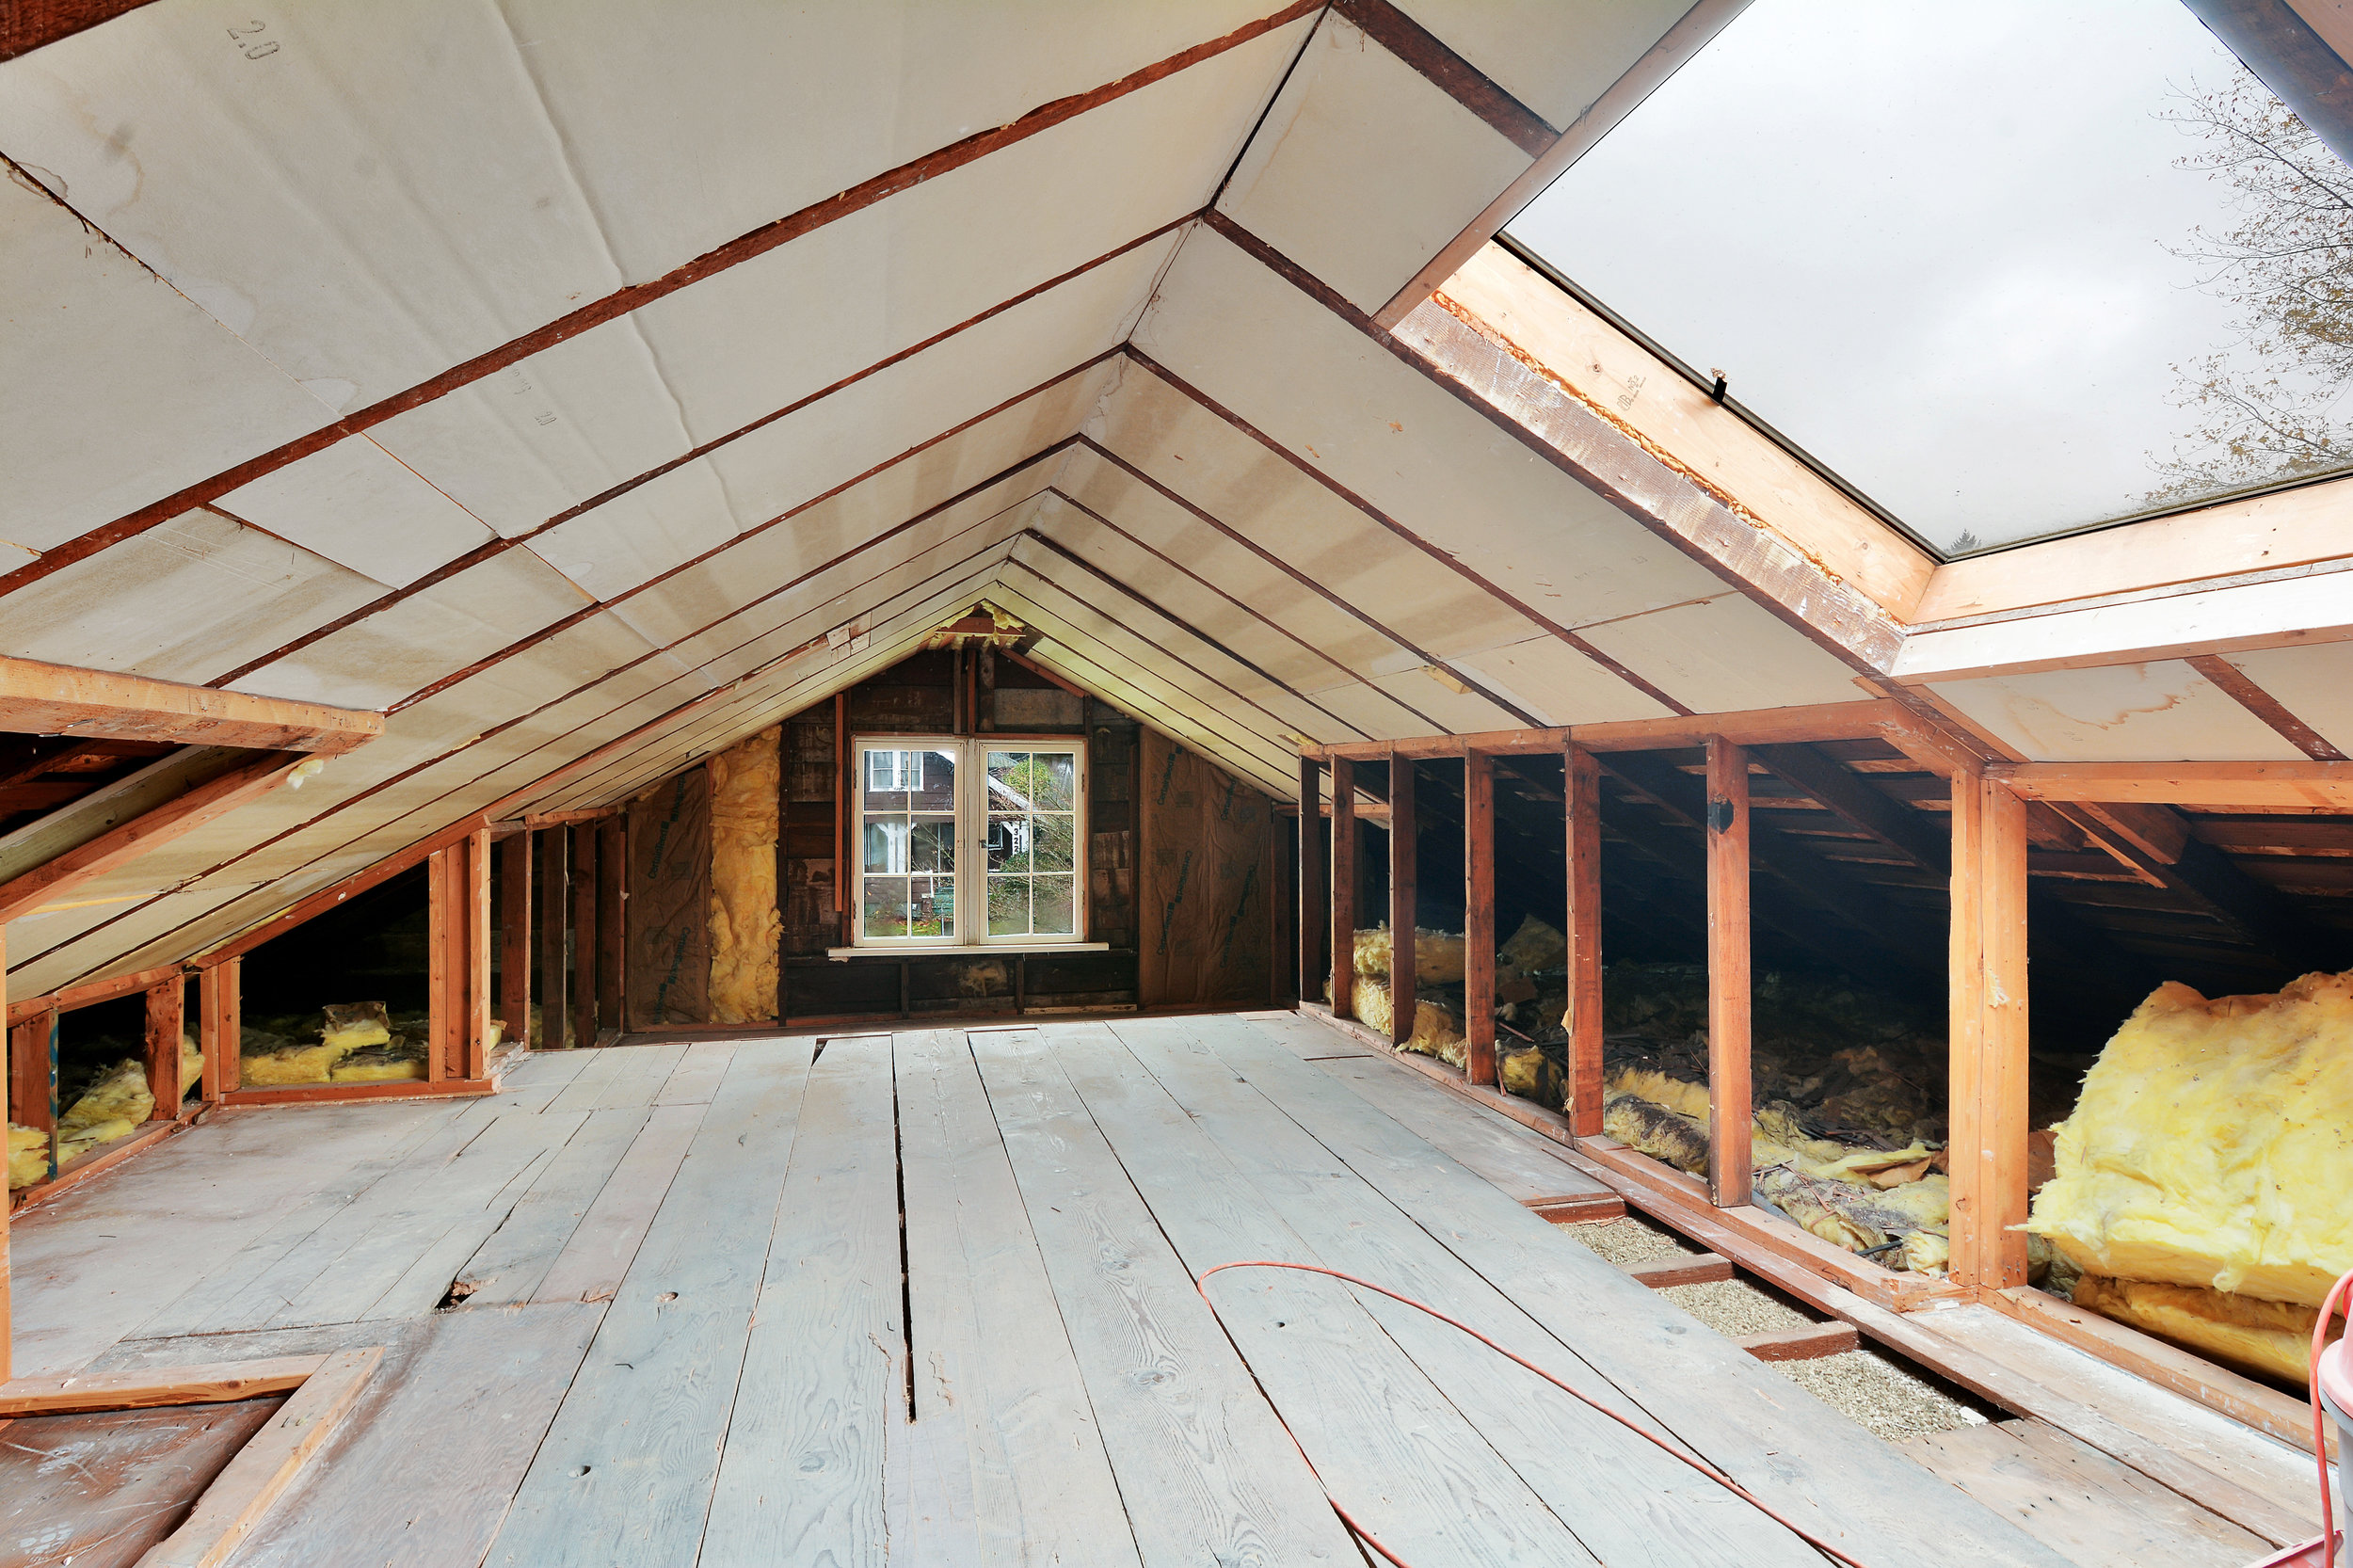 An unfinished attic with skylight and a window at each end. Accessible by stairs.